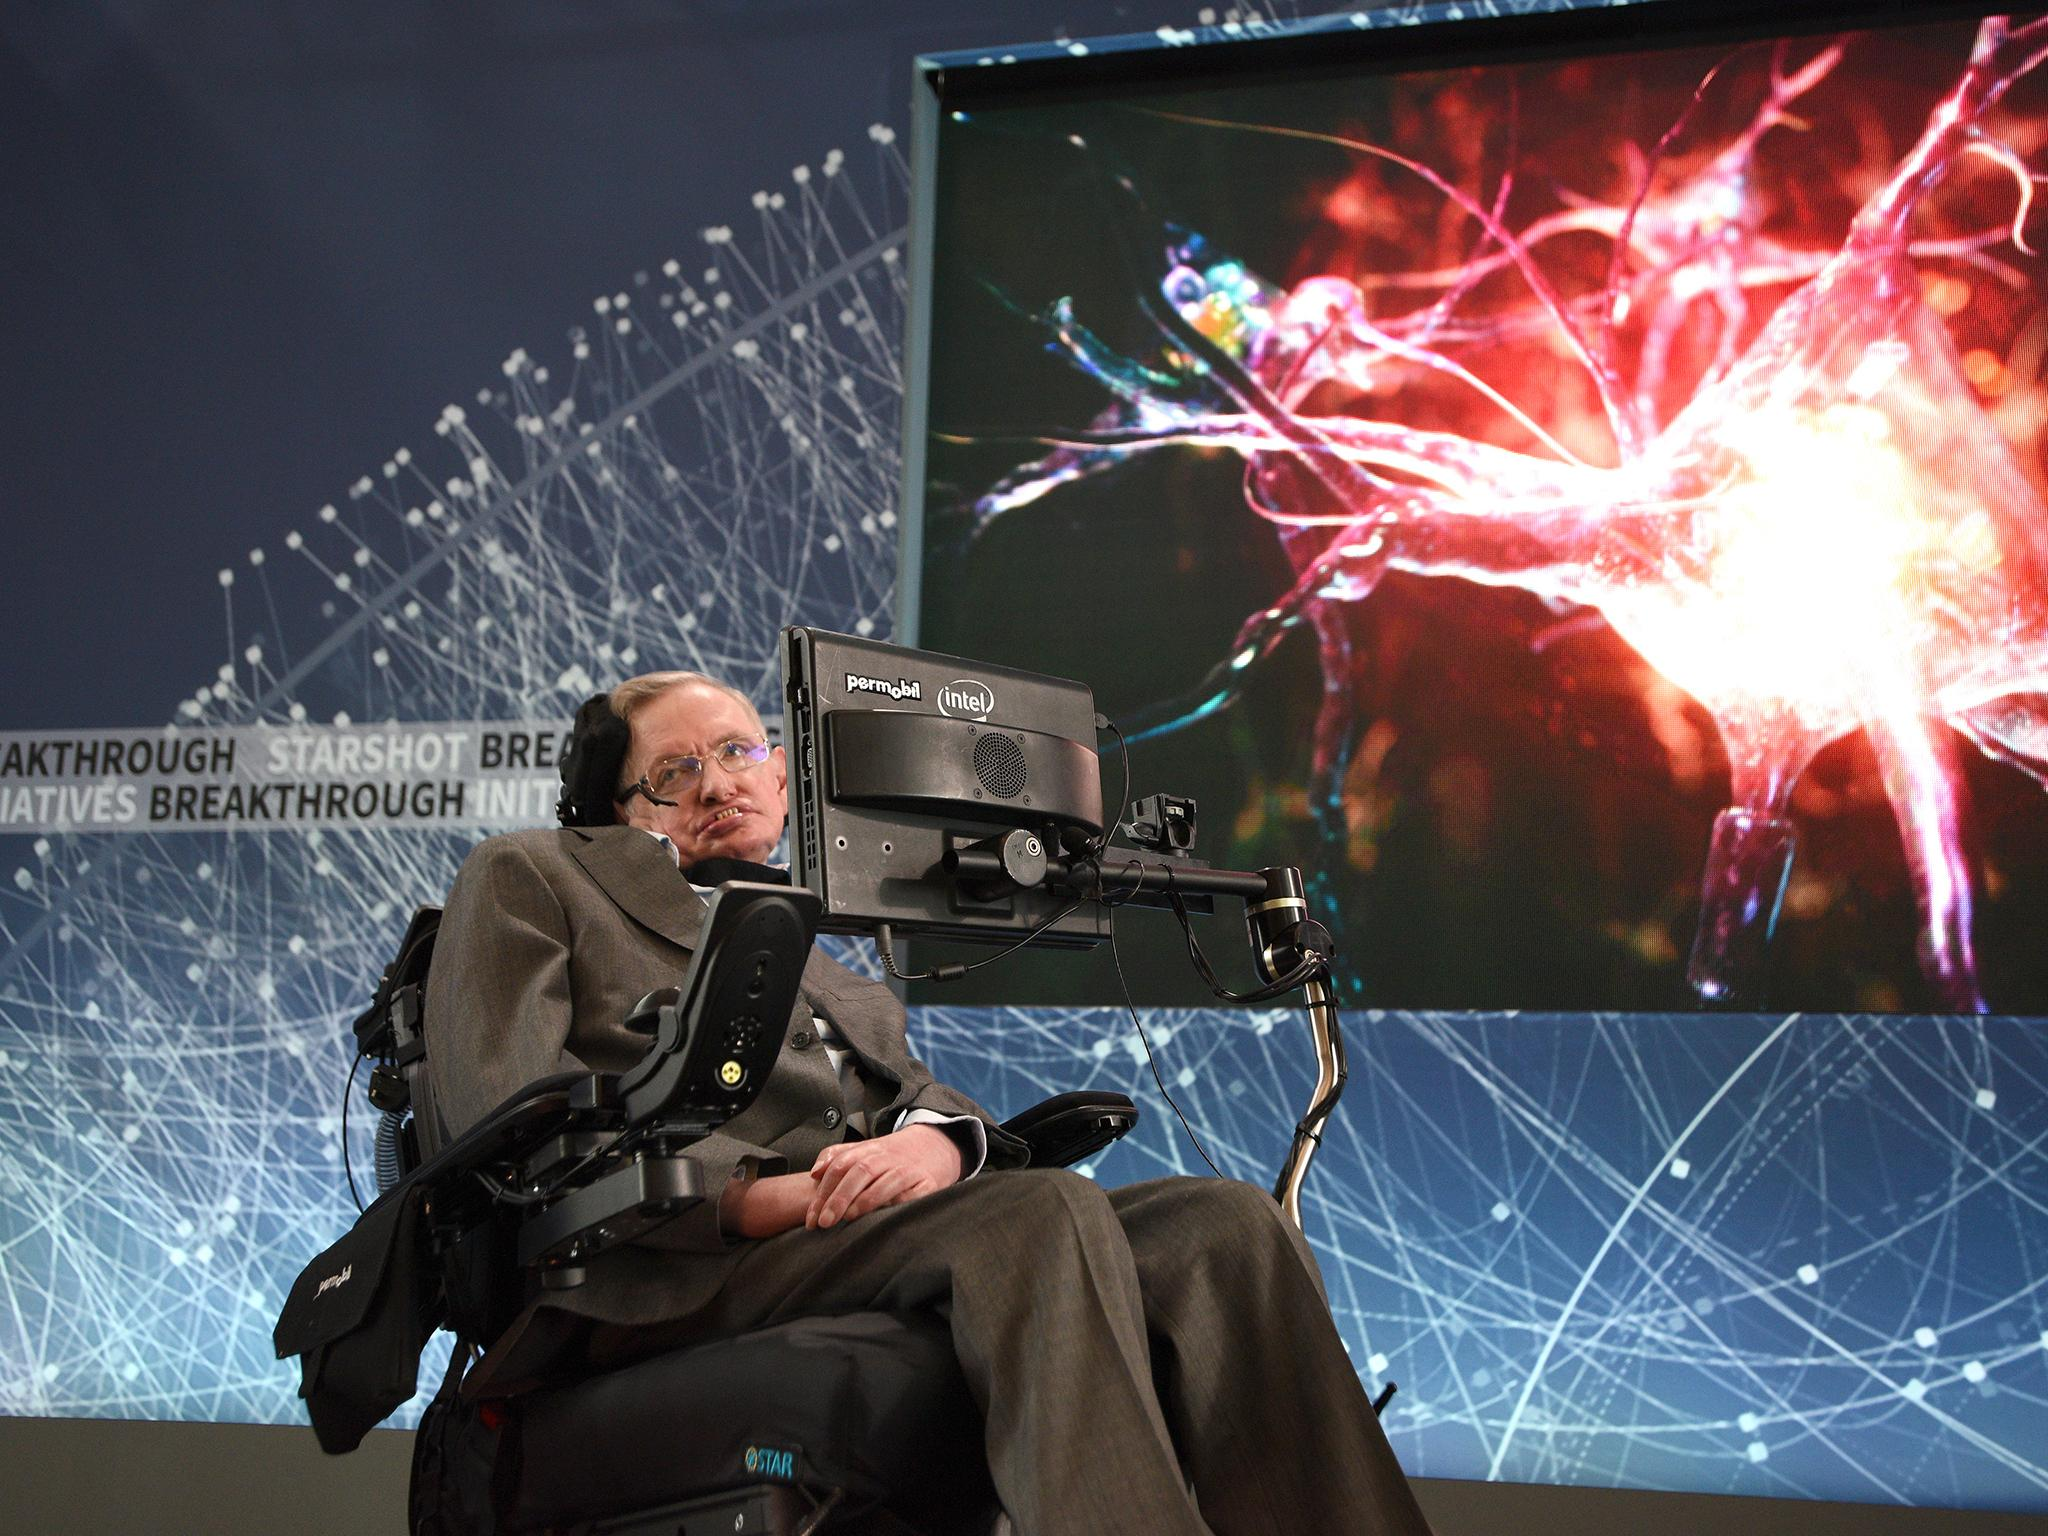 Stephen Hawkings Final Paper Revealed Showing Professors Last  Stephen Hawkings Final Paper Revealed Showing Professors Last Statement  On The Universe Before His Death  The Independent Business Essay Topics also Living A Healthy Lifestyle Essay  Business Plan Writers In Delhi